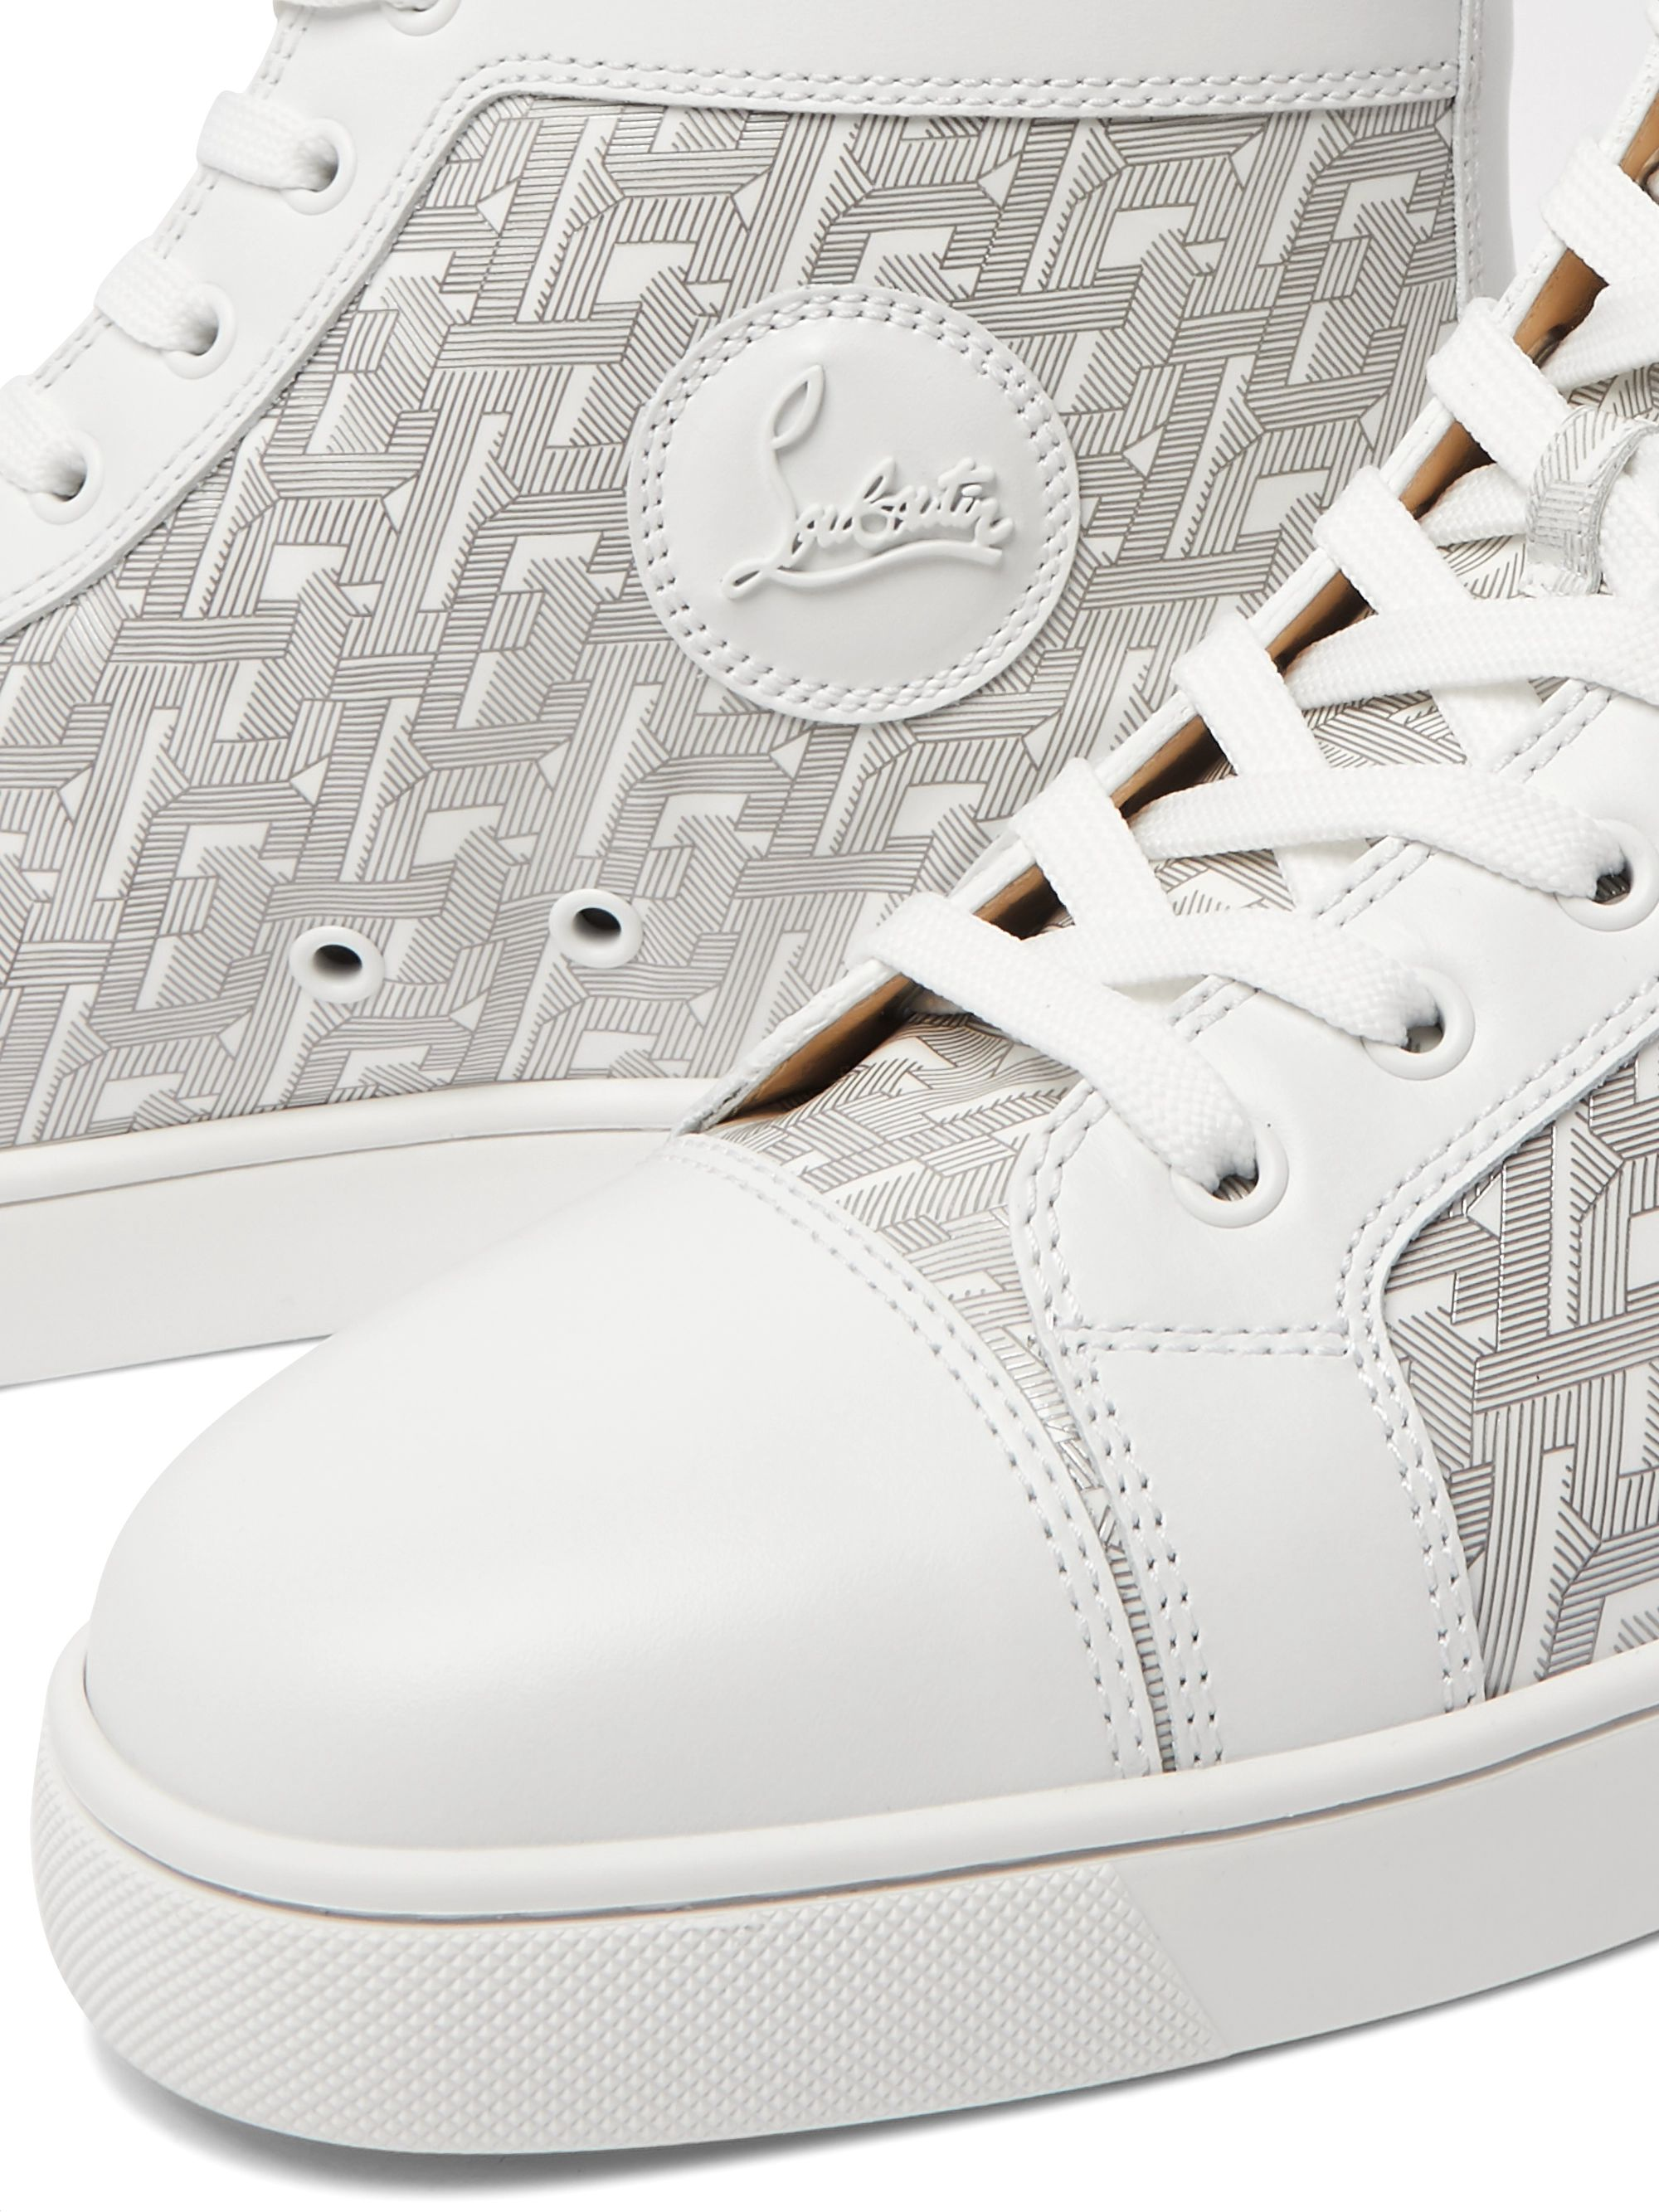 Christian Louboutin Louis Smooth and Logo-Print Patent-Leather High-Top Sneakers